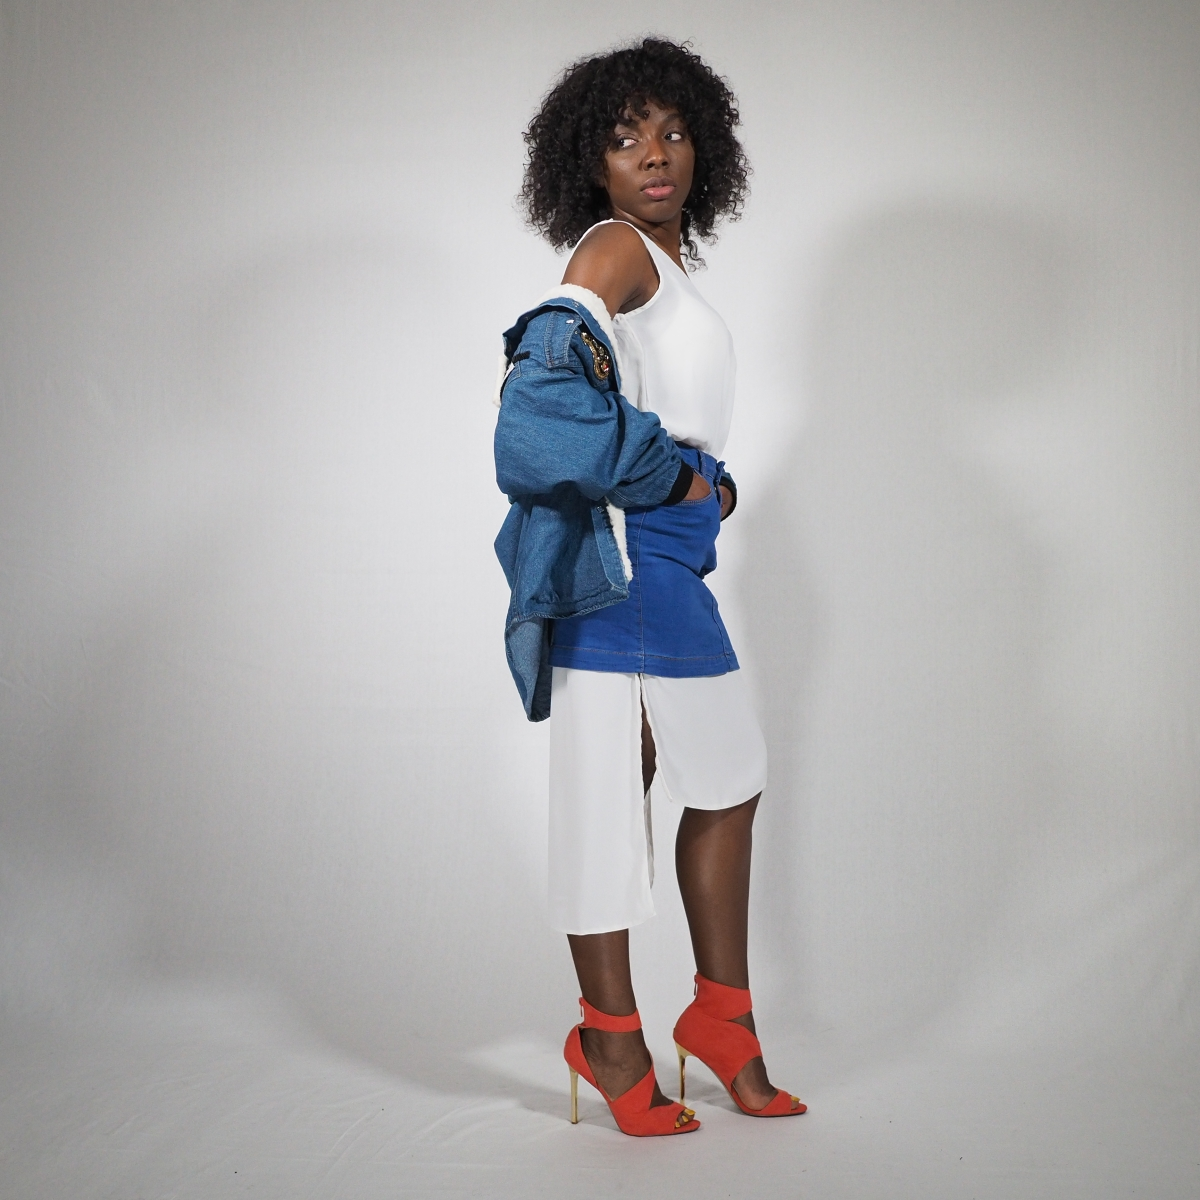 Styling Bomber Jackets For Summer